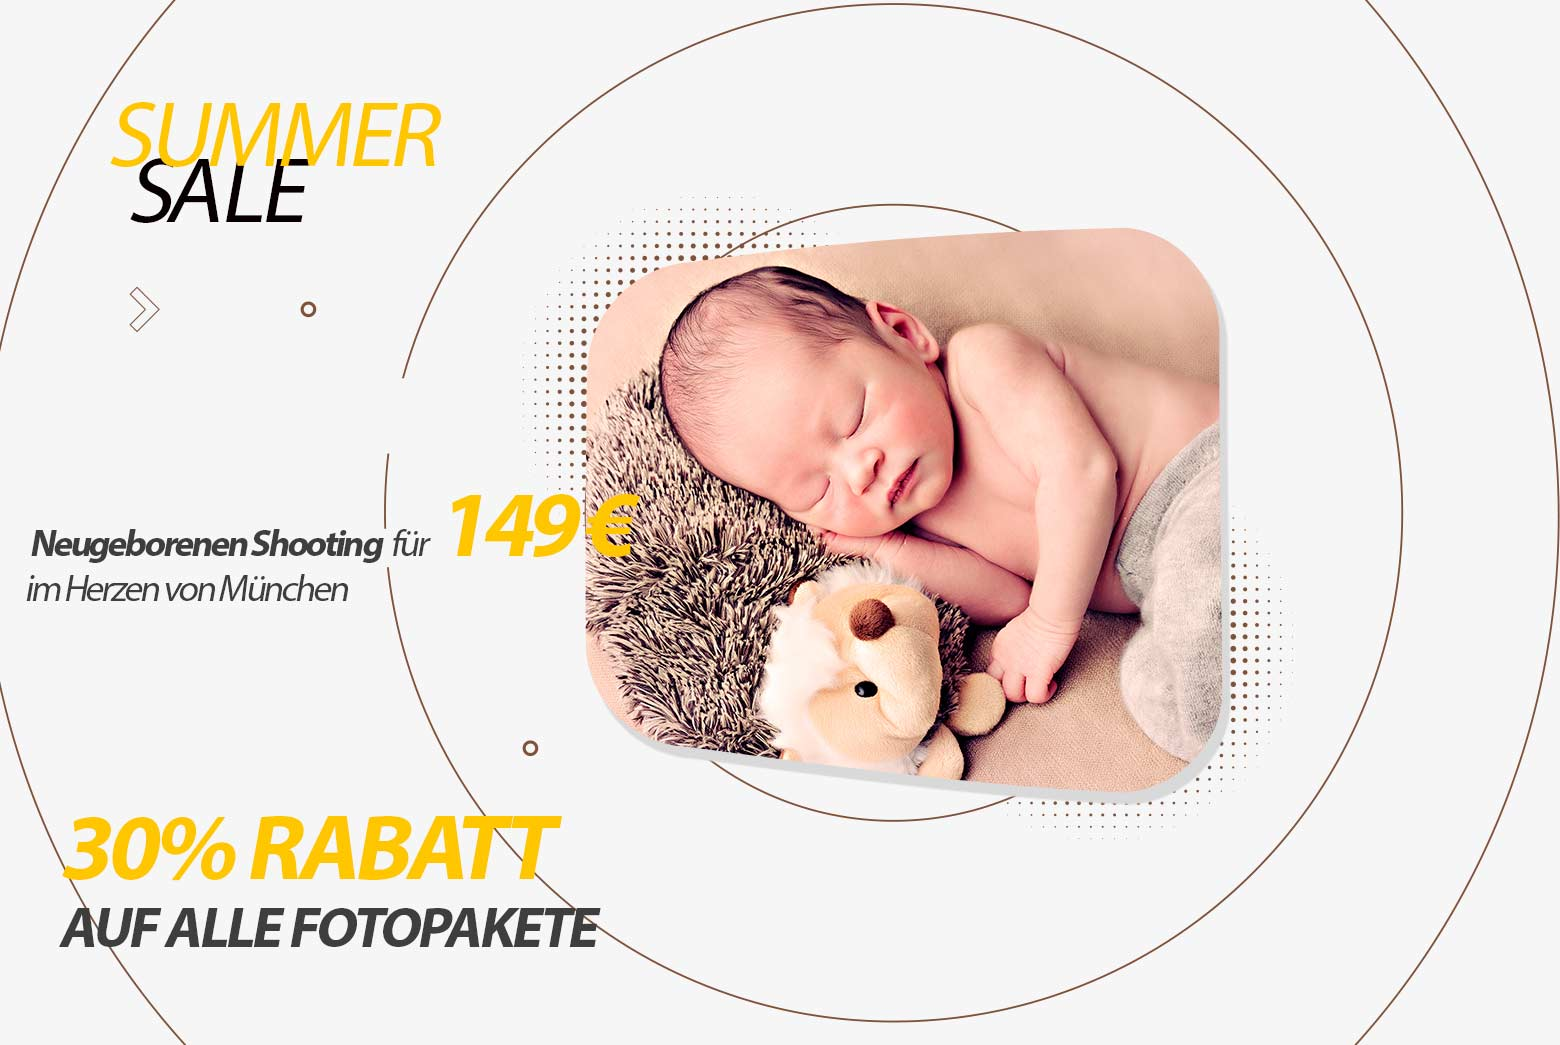 Baby Shooting professionelle